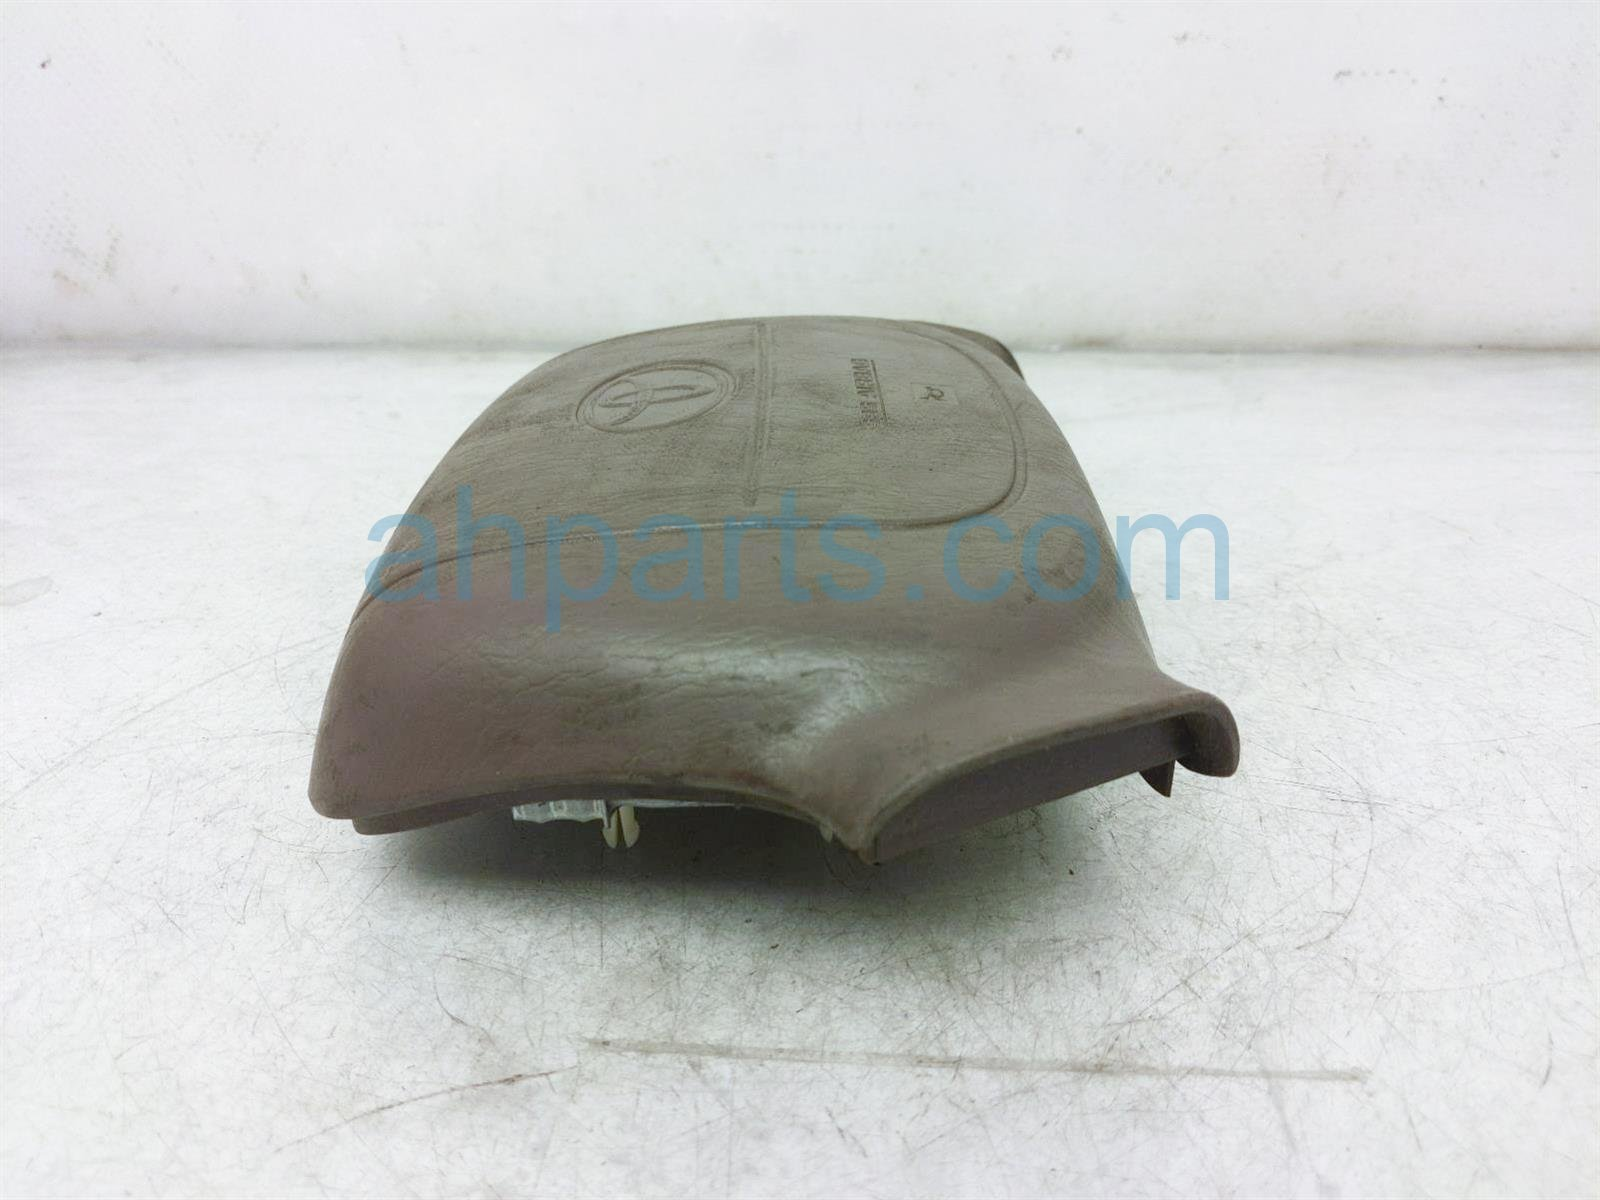 2000 Toyota Tacoma Driver Wheel Airbag 45130 04050 E0 Replacement